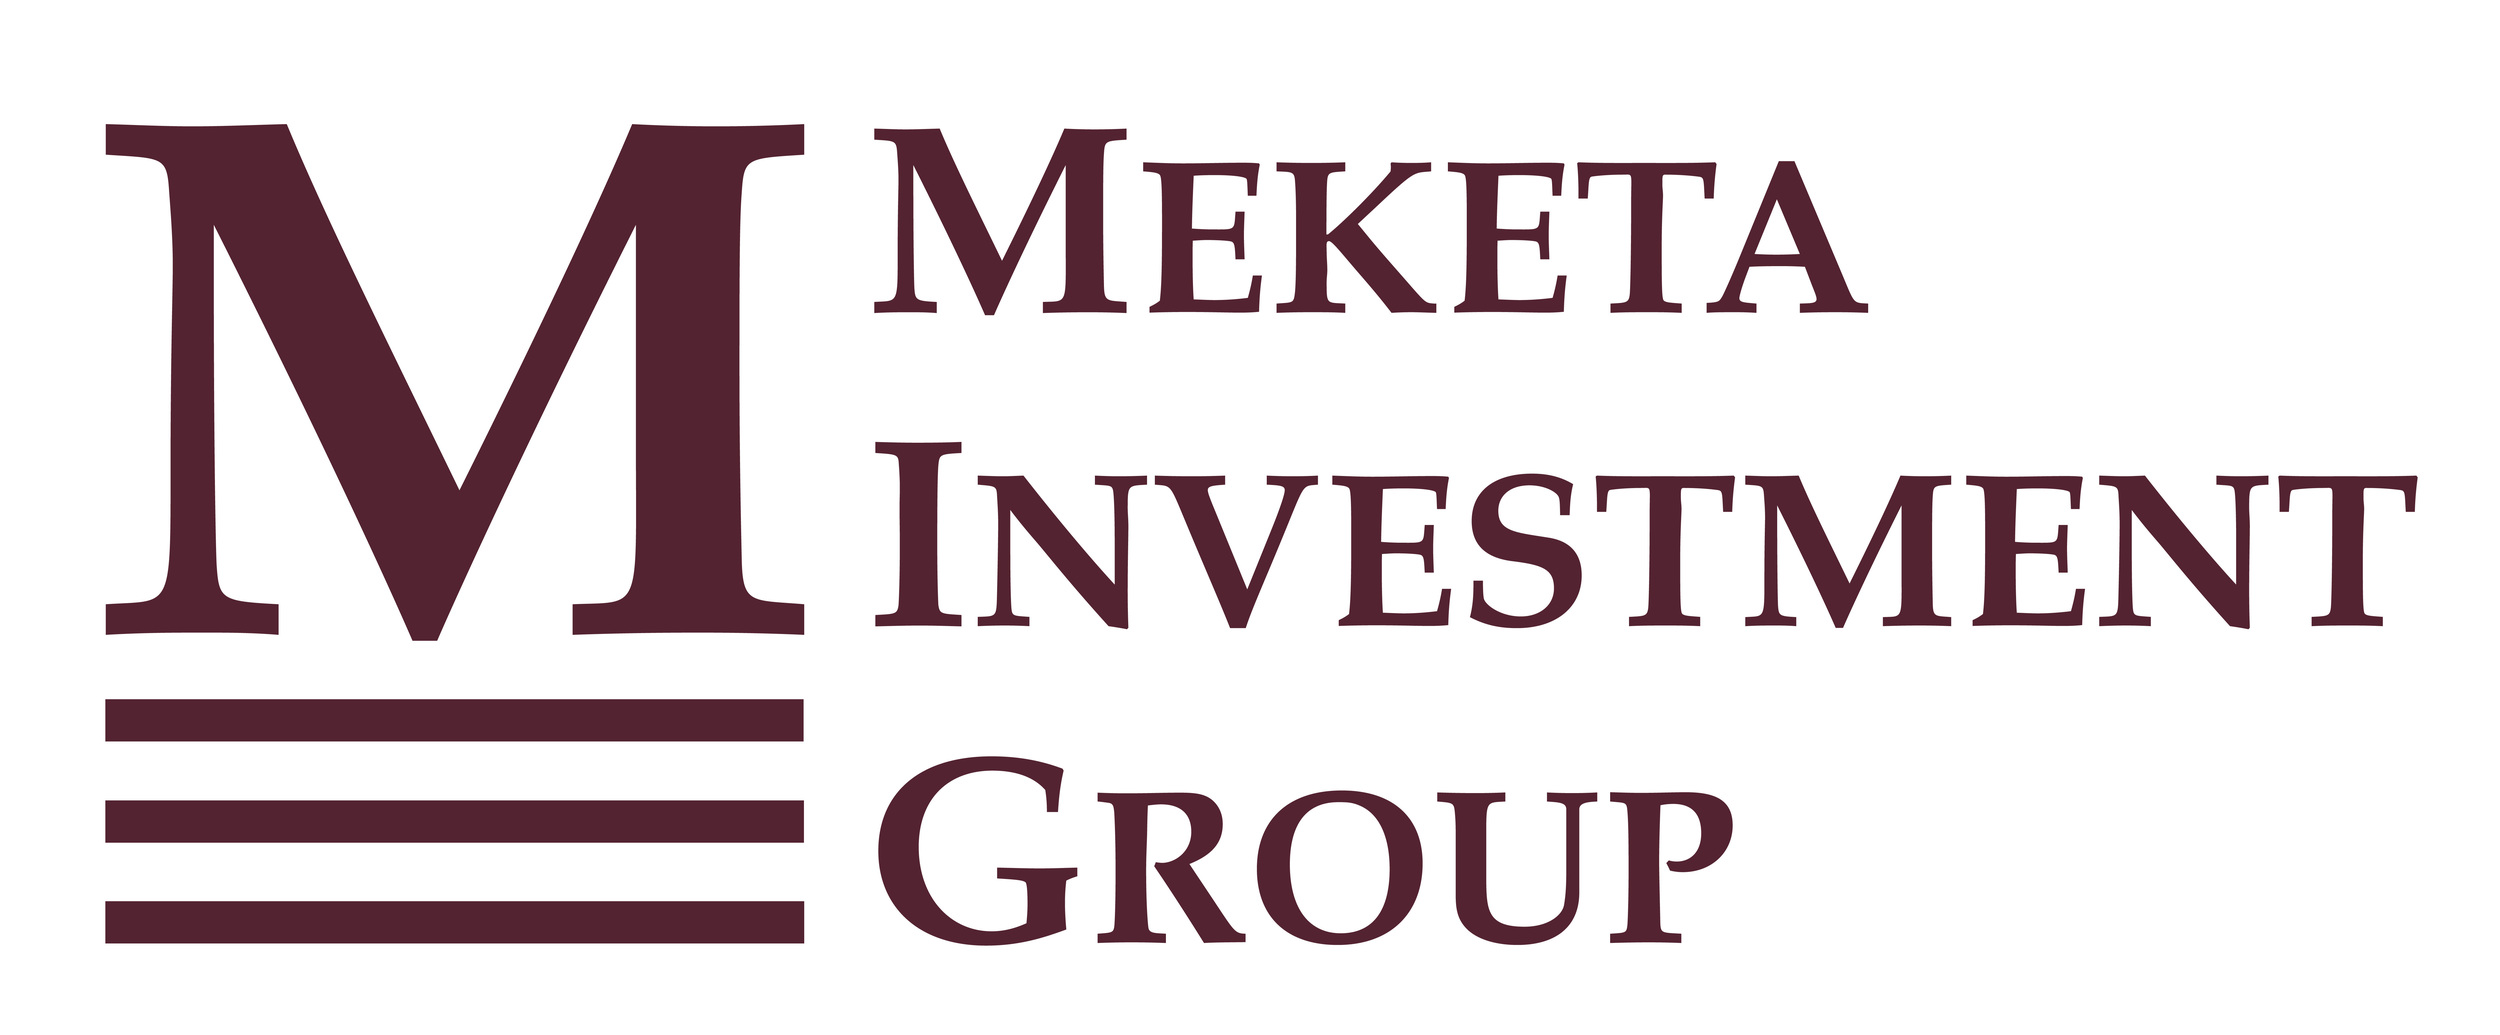 Meketa Investment Group Logo.jpeg